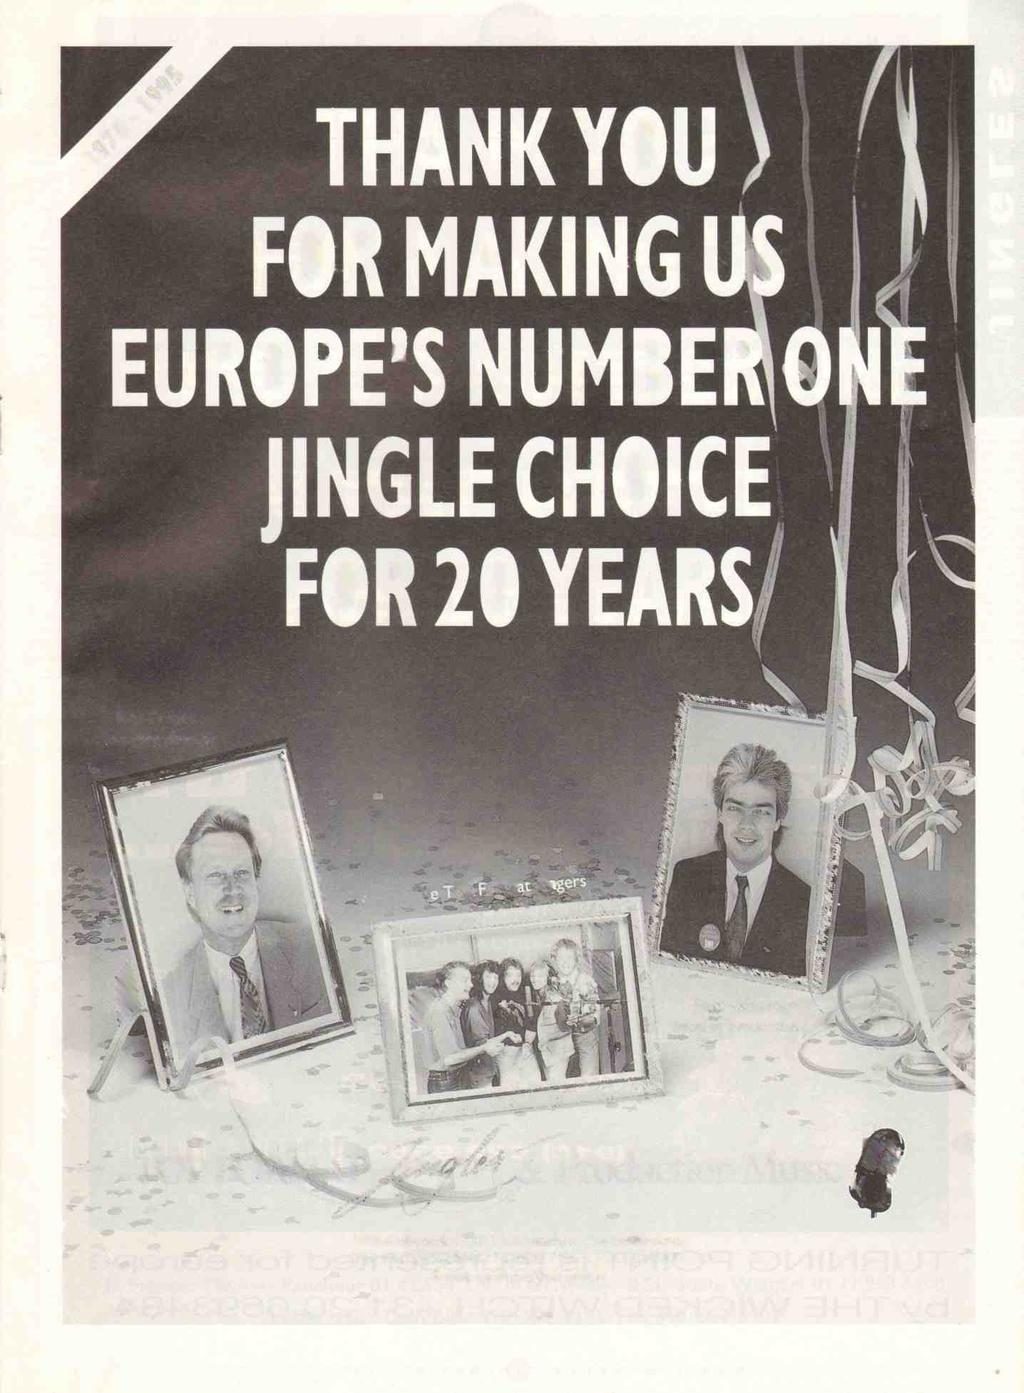 AS. THANK YOU FOR MAKING EUROPE'S NUMBE' JINGLE